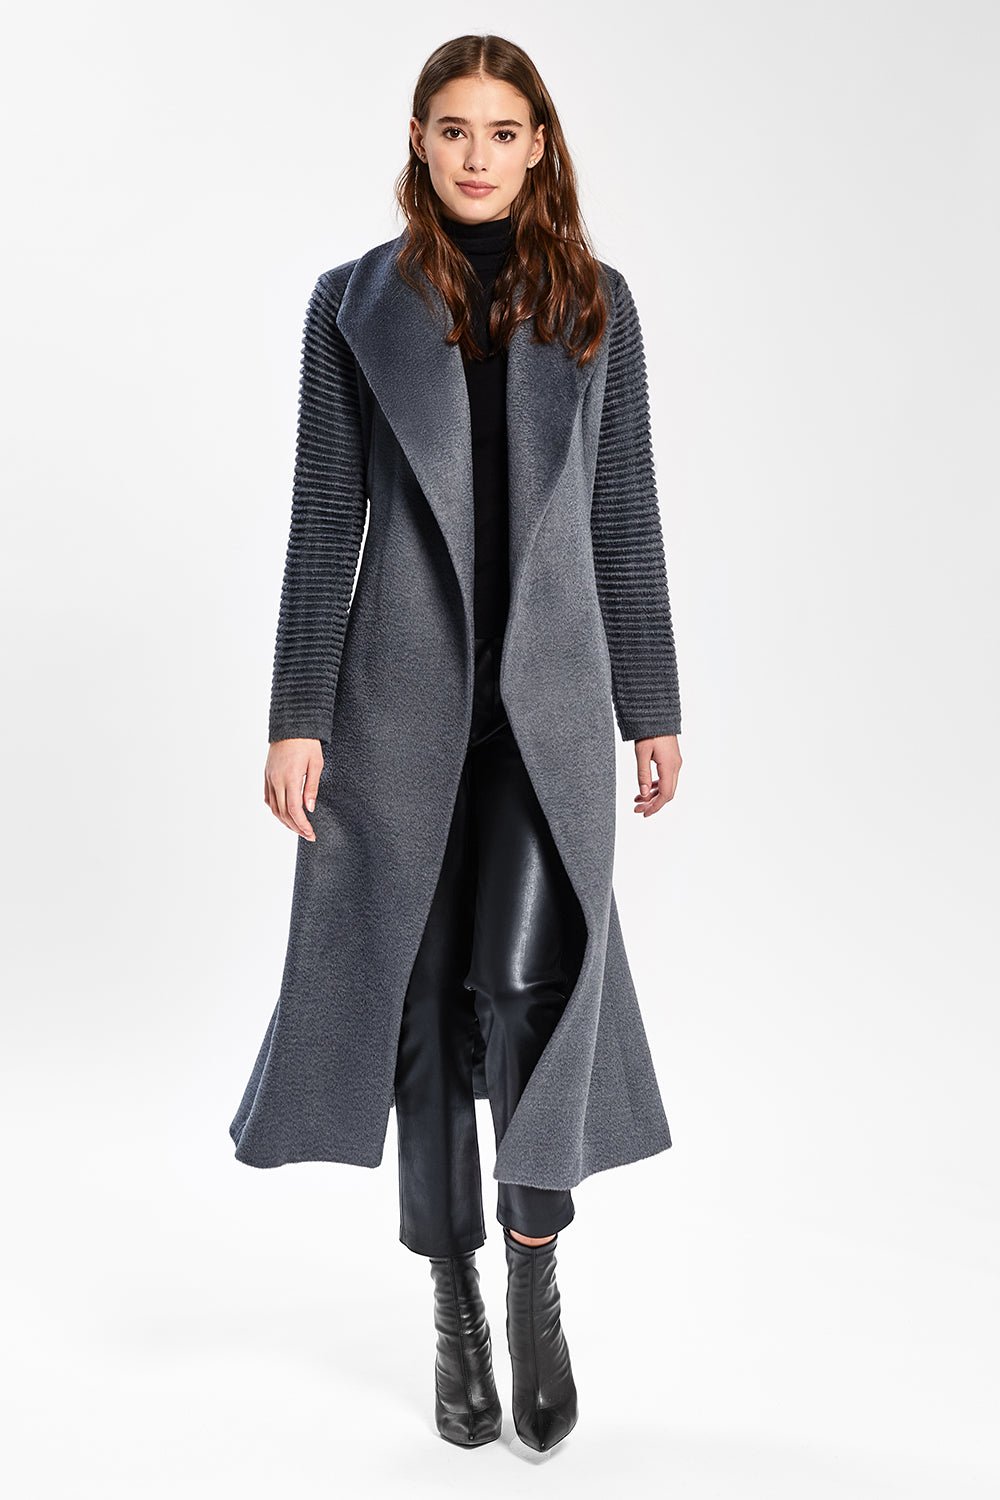 Sentaler Suri Alpaca Long Shawl Collar Wrap Coat with Ribbed Sleeves featured in Suri Alpaca and available in Charcoal. Seen open.